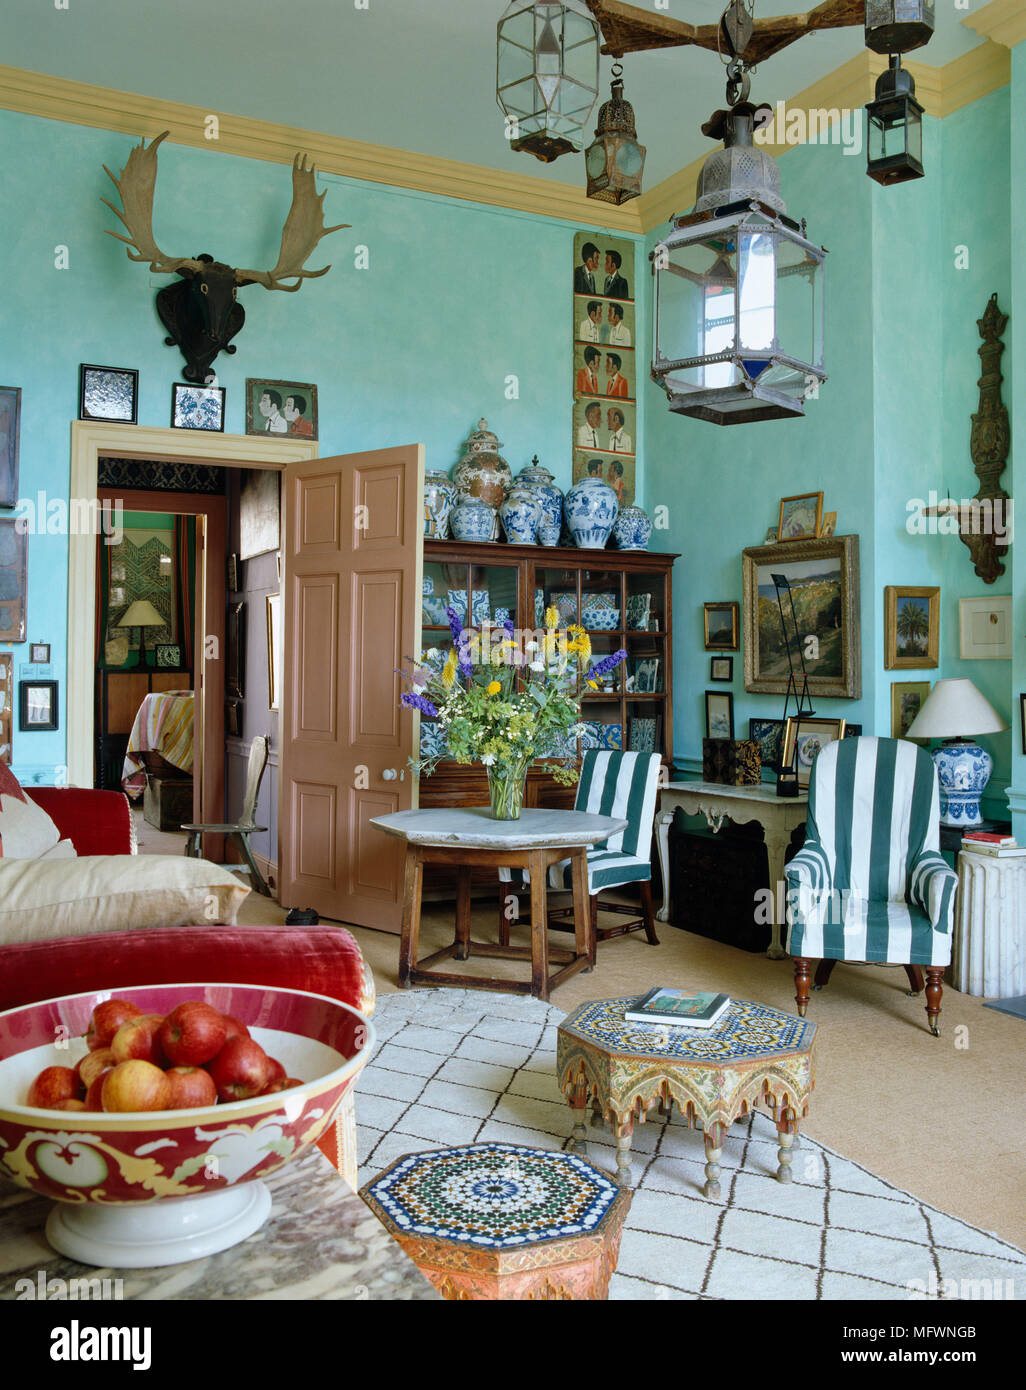 An eclectic mix of furniture in cluttered country style blue ...